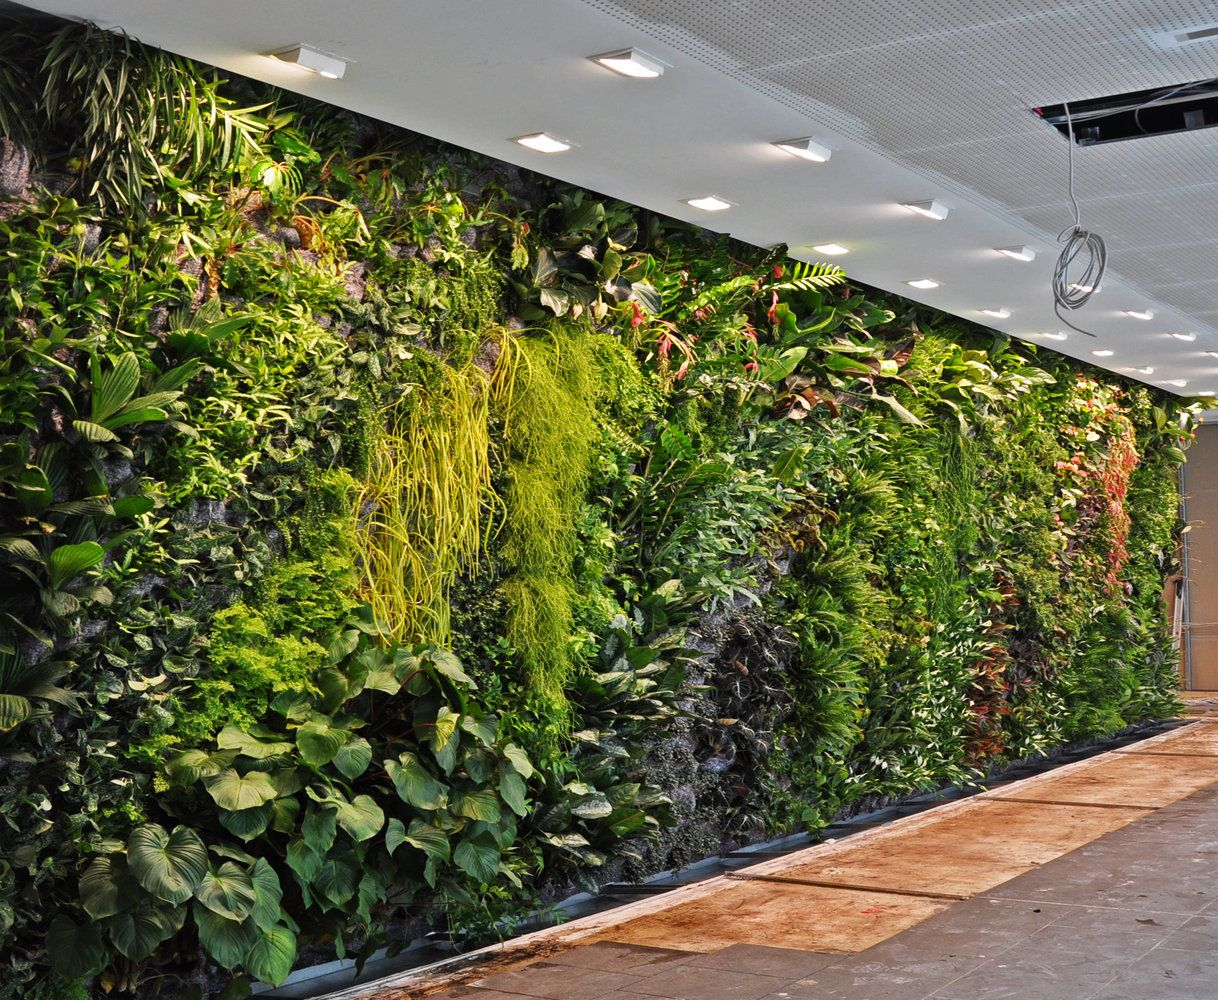 17 Amazing Vertical Garden Designs Gardens Wels and Search